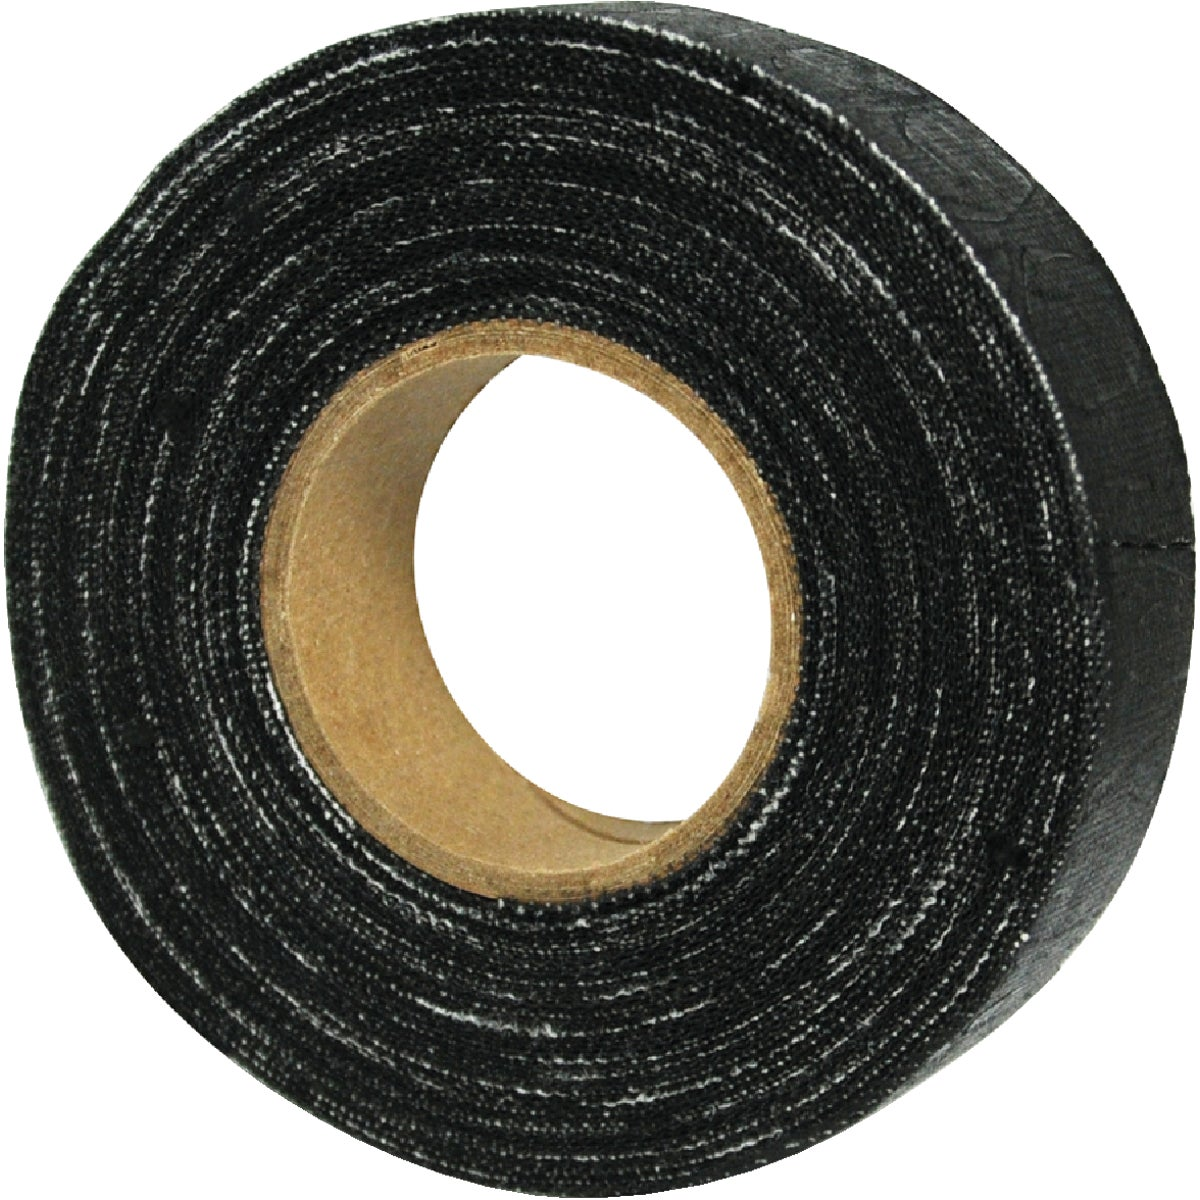 "3/4""X60' FRICTION TAPE"